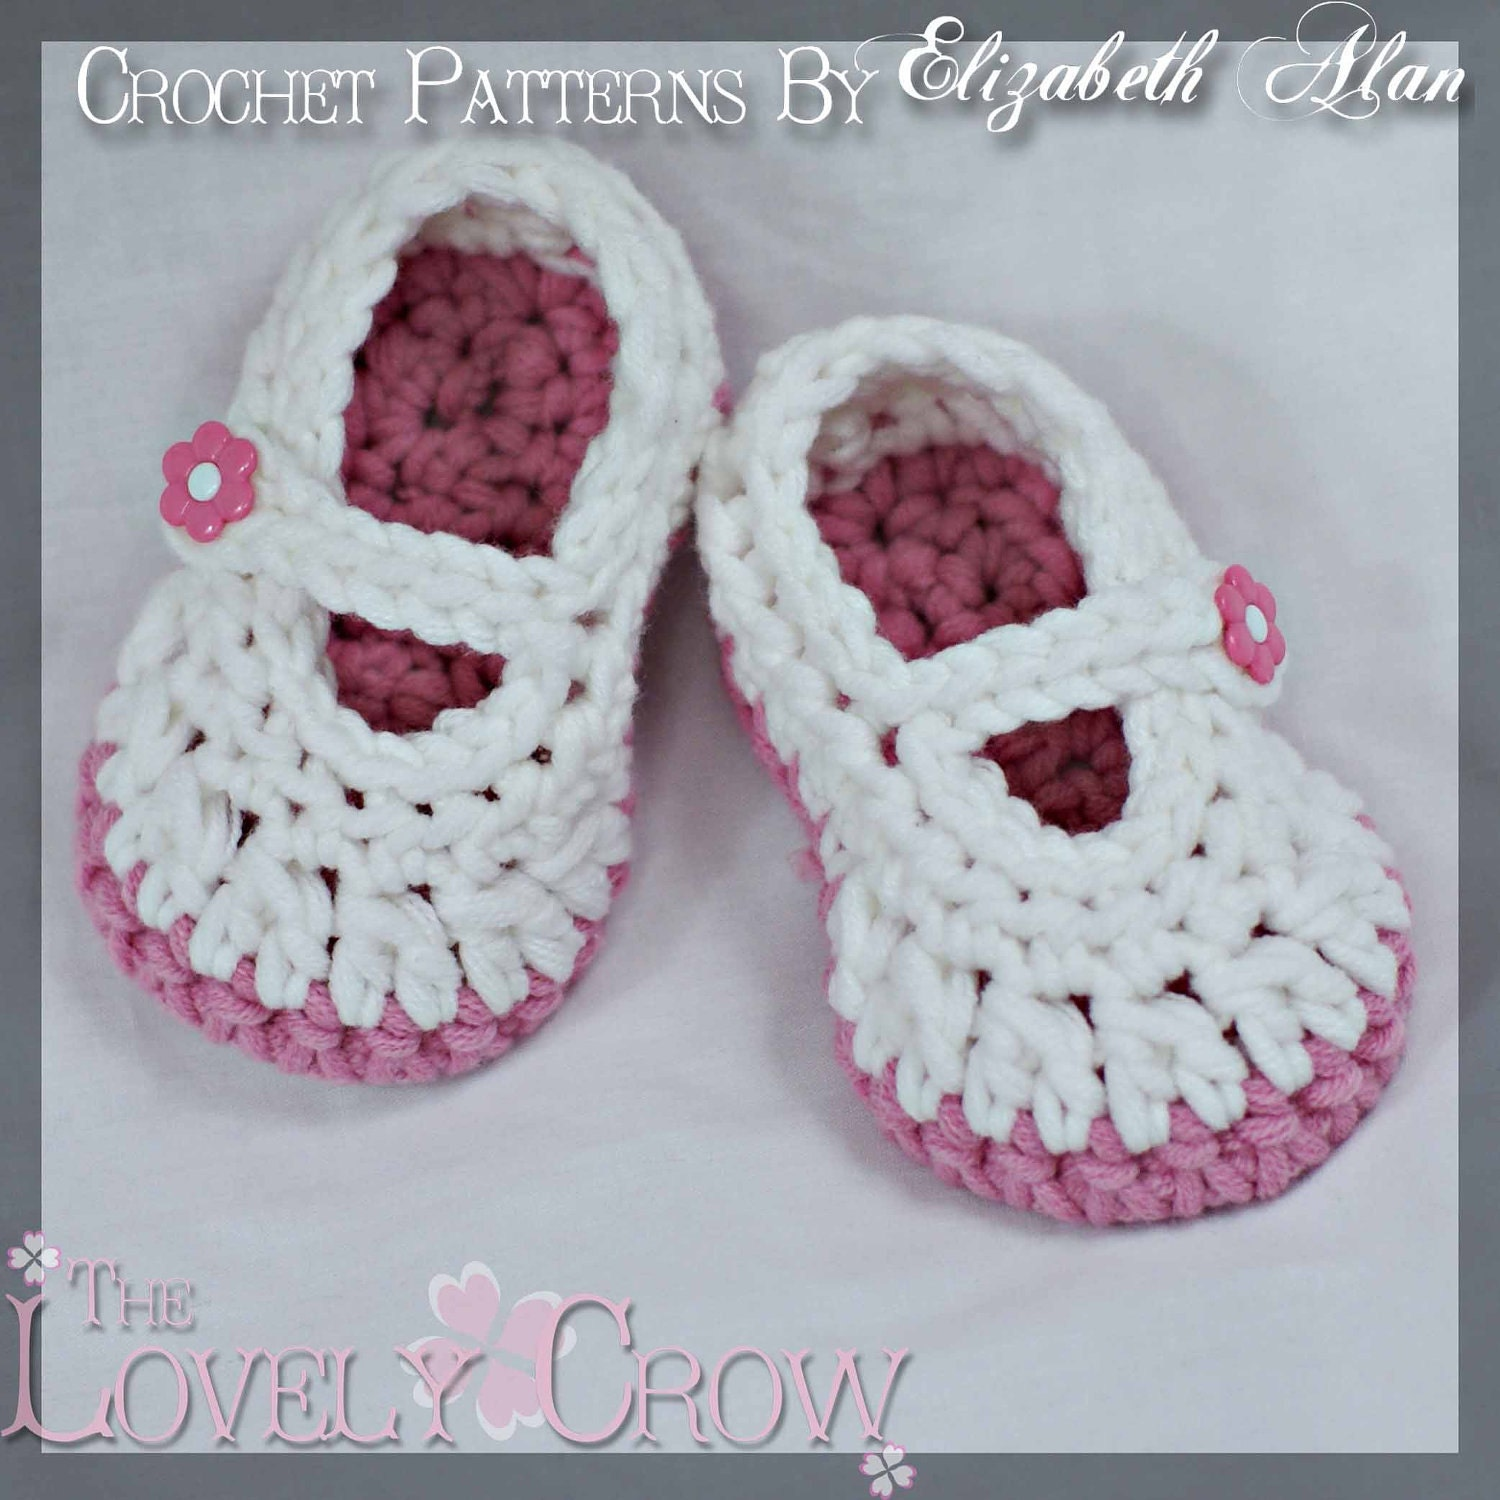 Crochet t bar baby shoes free pattern dancox for mary janes crochet pattern for bulky yarn baby button crochet t bar baby shoes free bankloansurffo Image collections